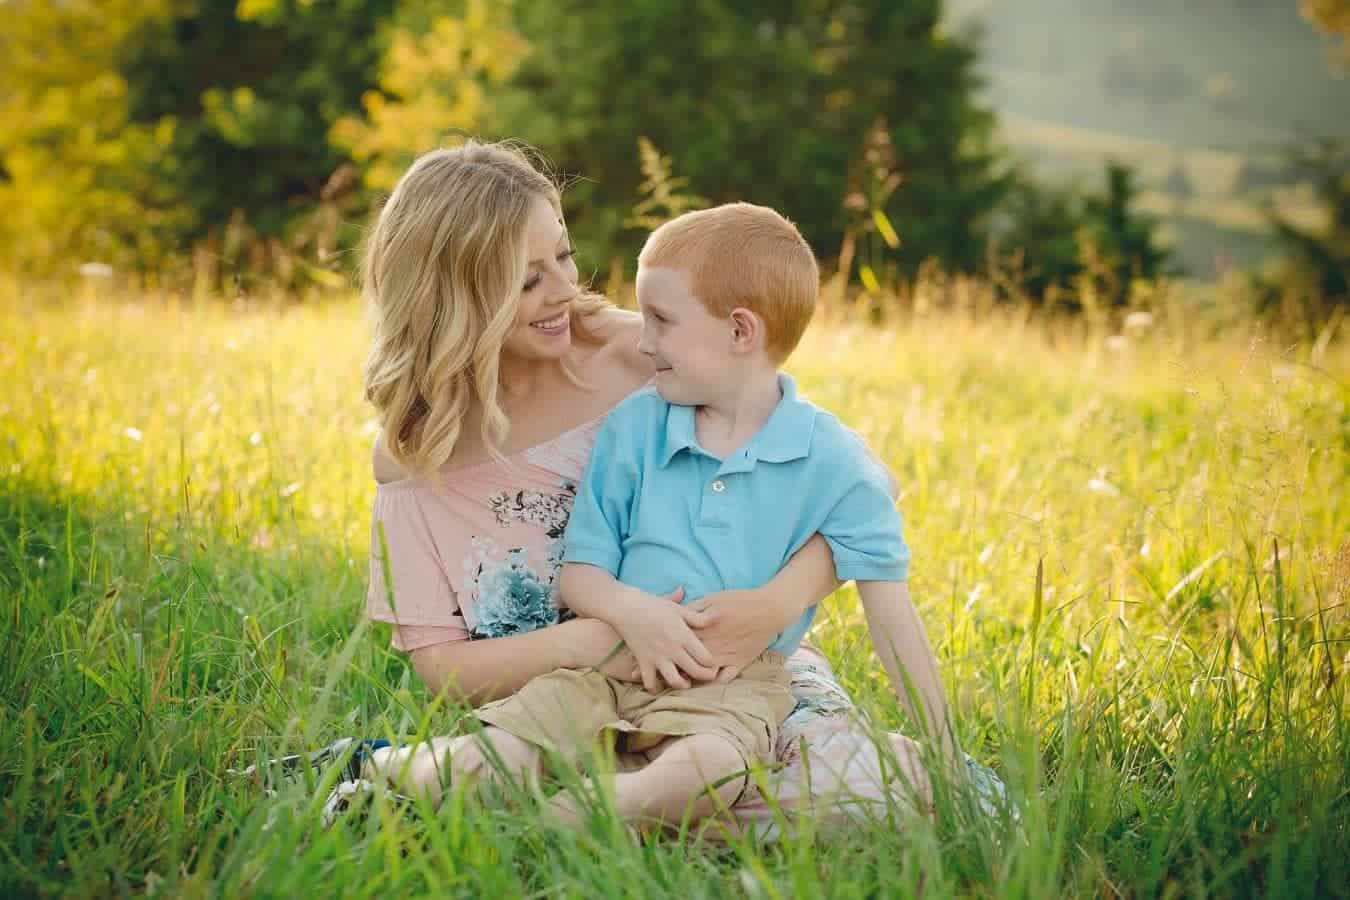 Being a mother to kids is an incredible gift, so today I'm sharing 5 important life lessons my boys taught me. From lessons learned to important truths, I'm sharing bits of encouragement on how to be a better mom and why we should learn from our children and take their advice on living life to the fullest, playing more and worrying less, and lovingunconditionally. #motherhood #parenting #parentingadvice #parentingtips #momlife